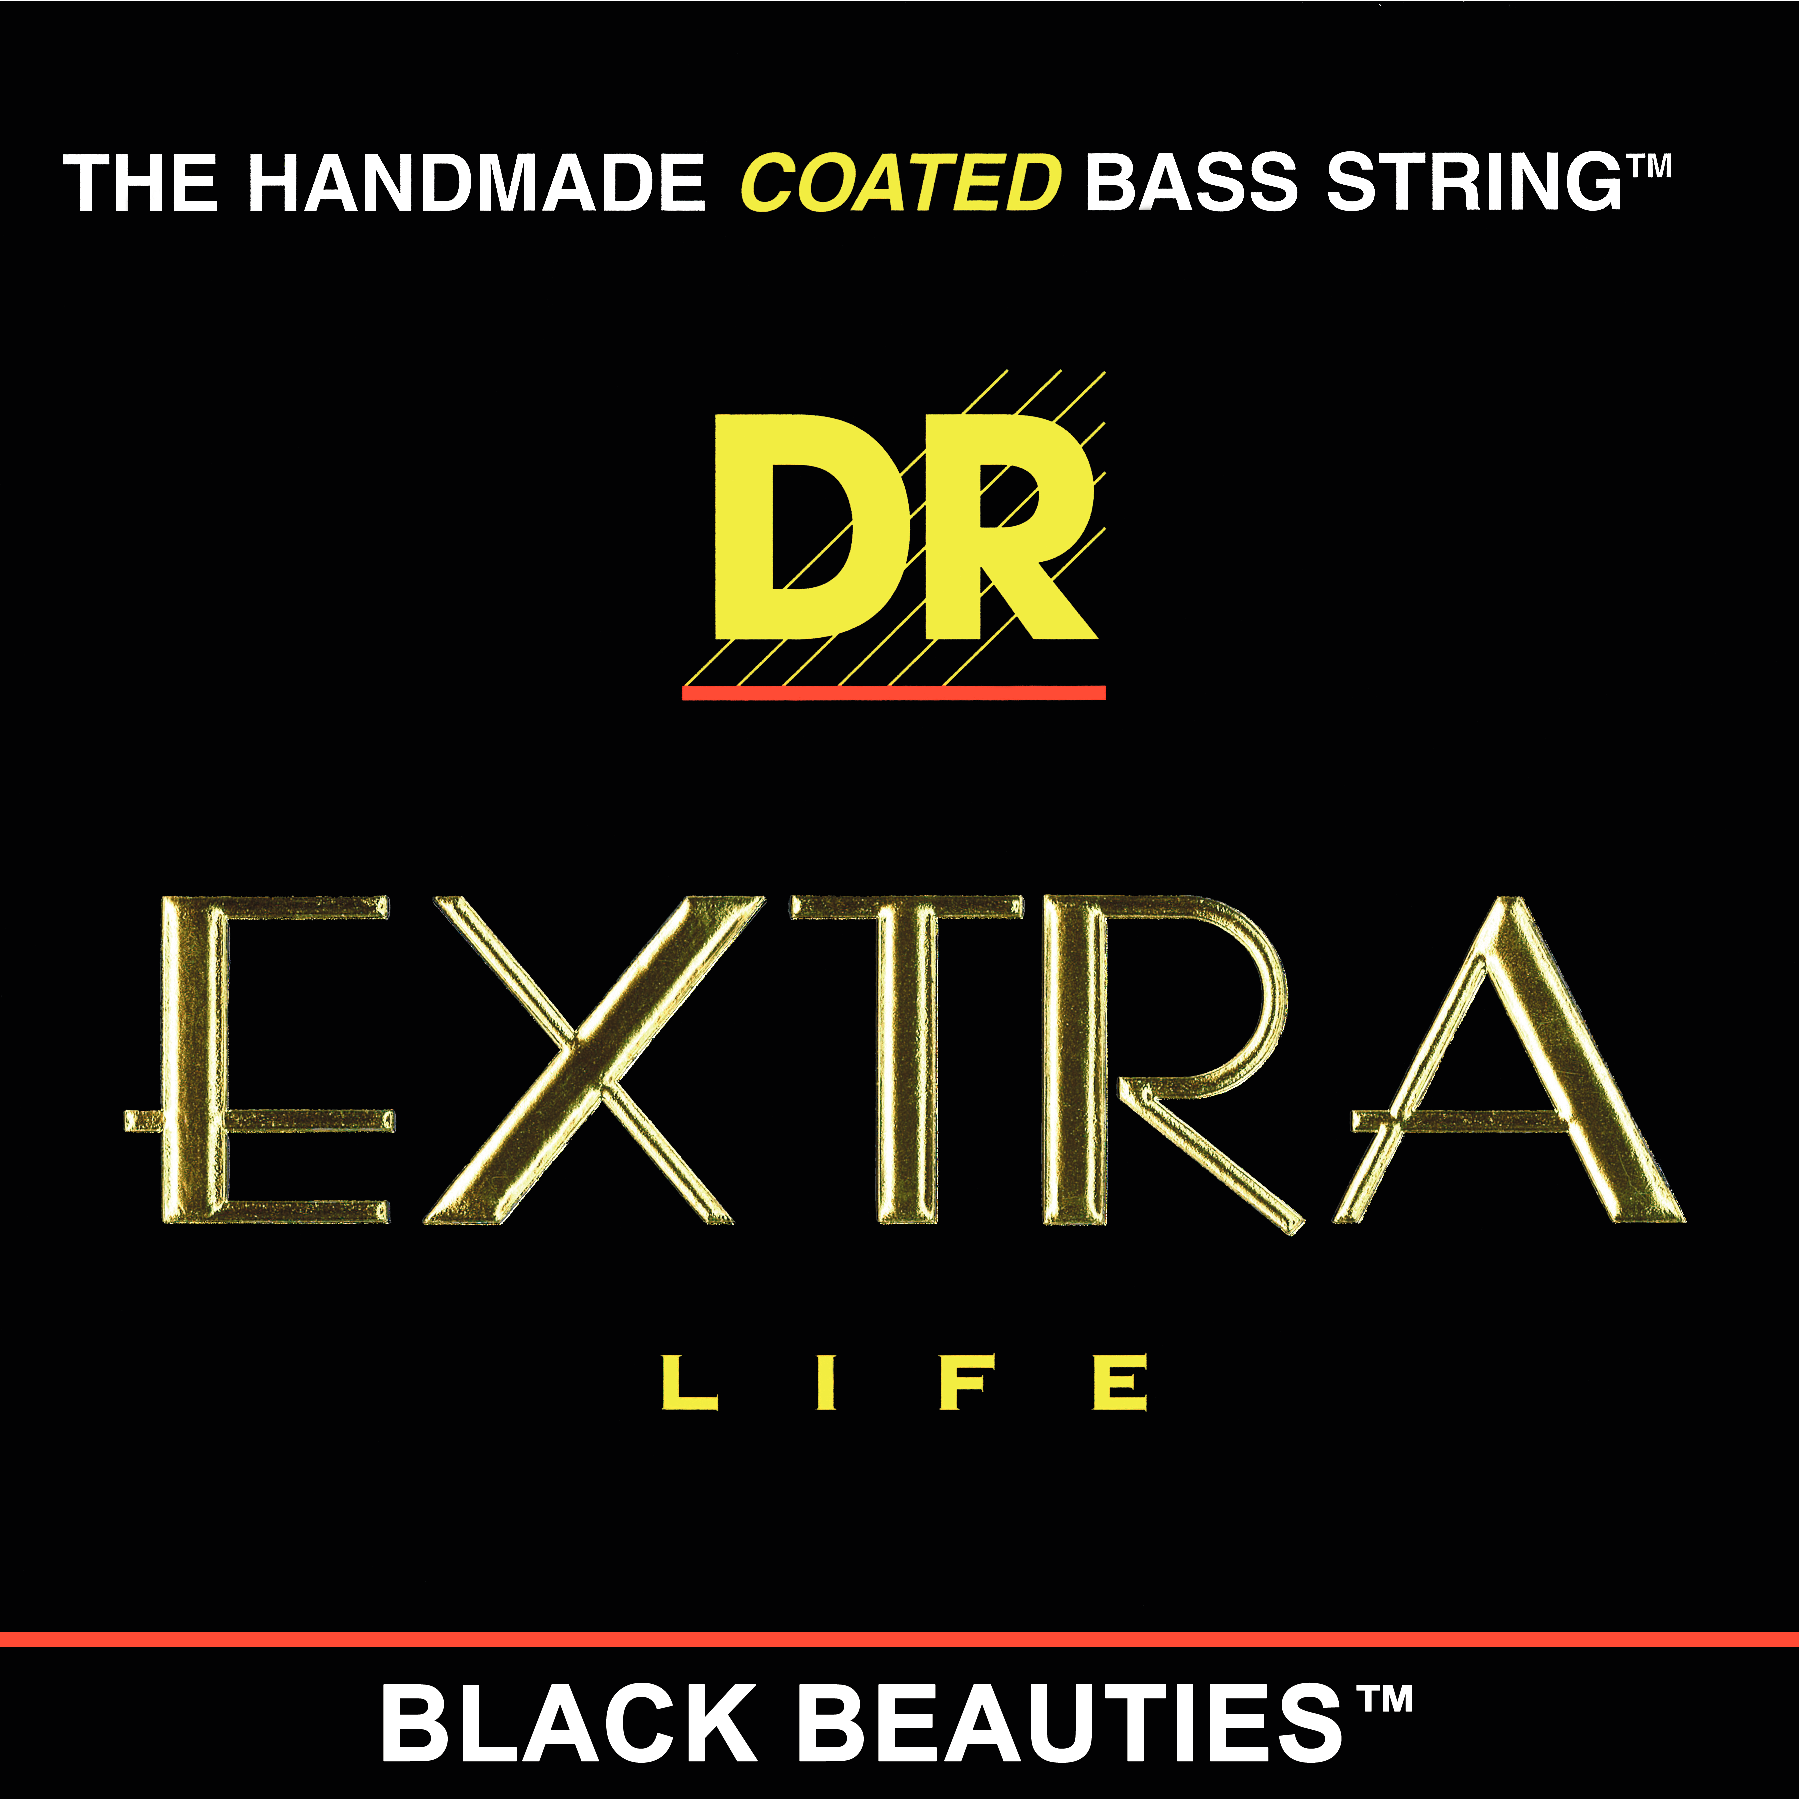 Extra Black Beauties Heavy Taper (.050 - . 110), DR B EXBK BKBT-50